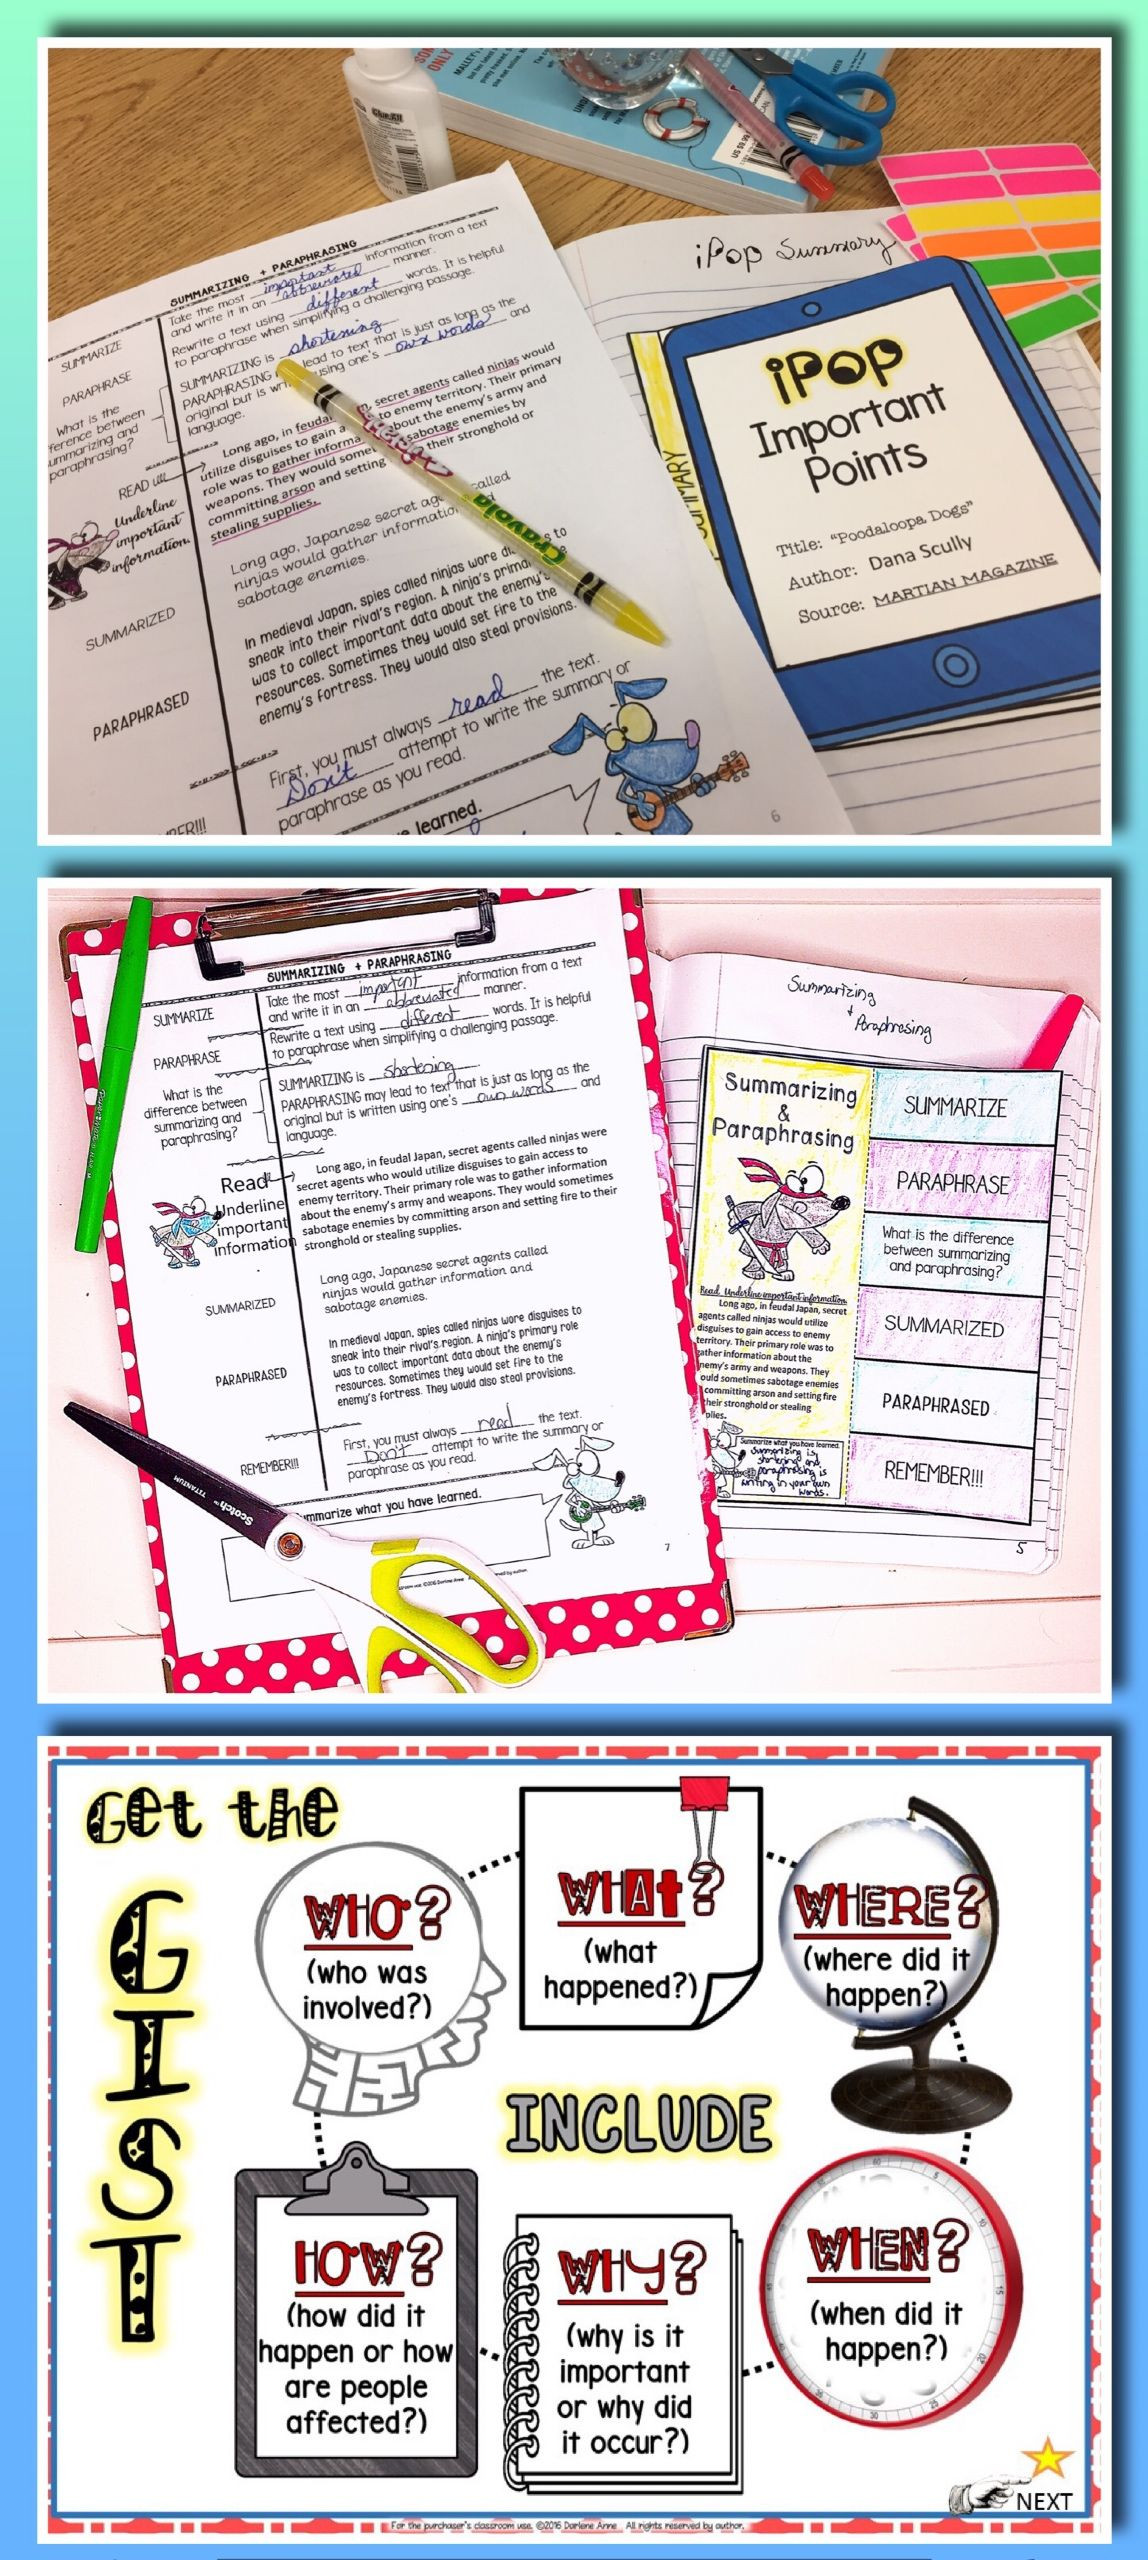 Paraphrasing Worksheets Middle School Summarizing & Paraphrasing Practice Worksheets and Test